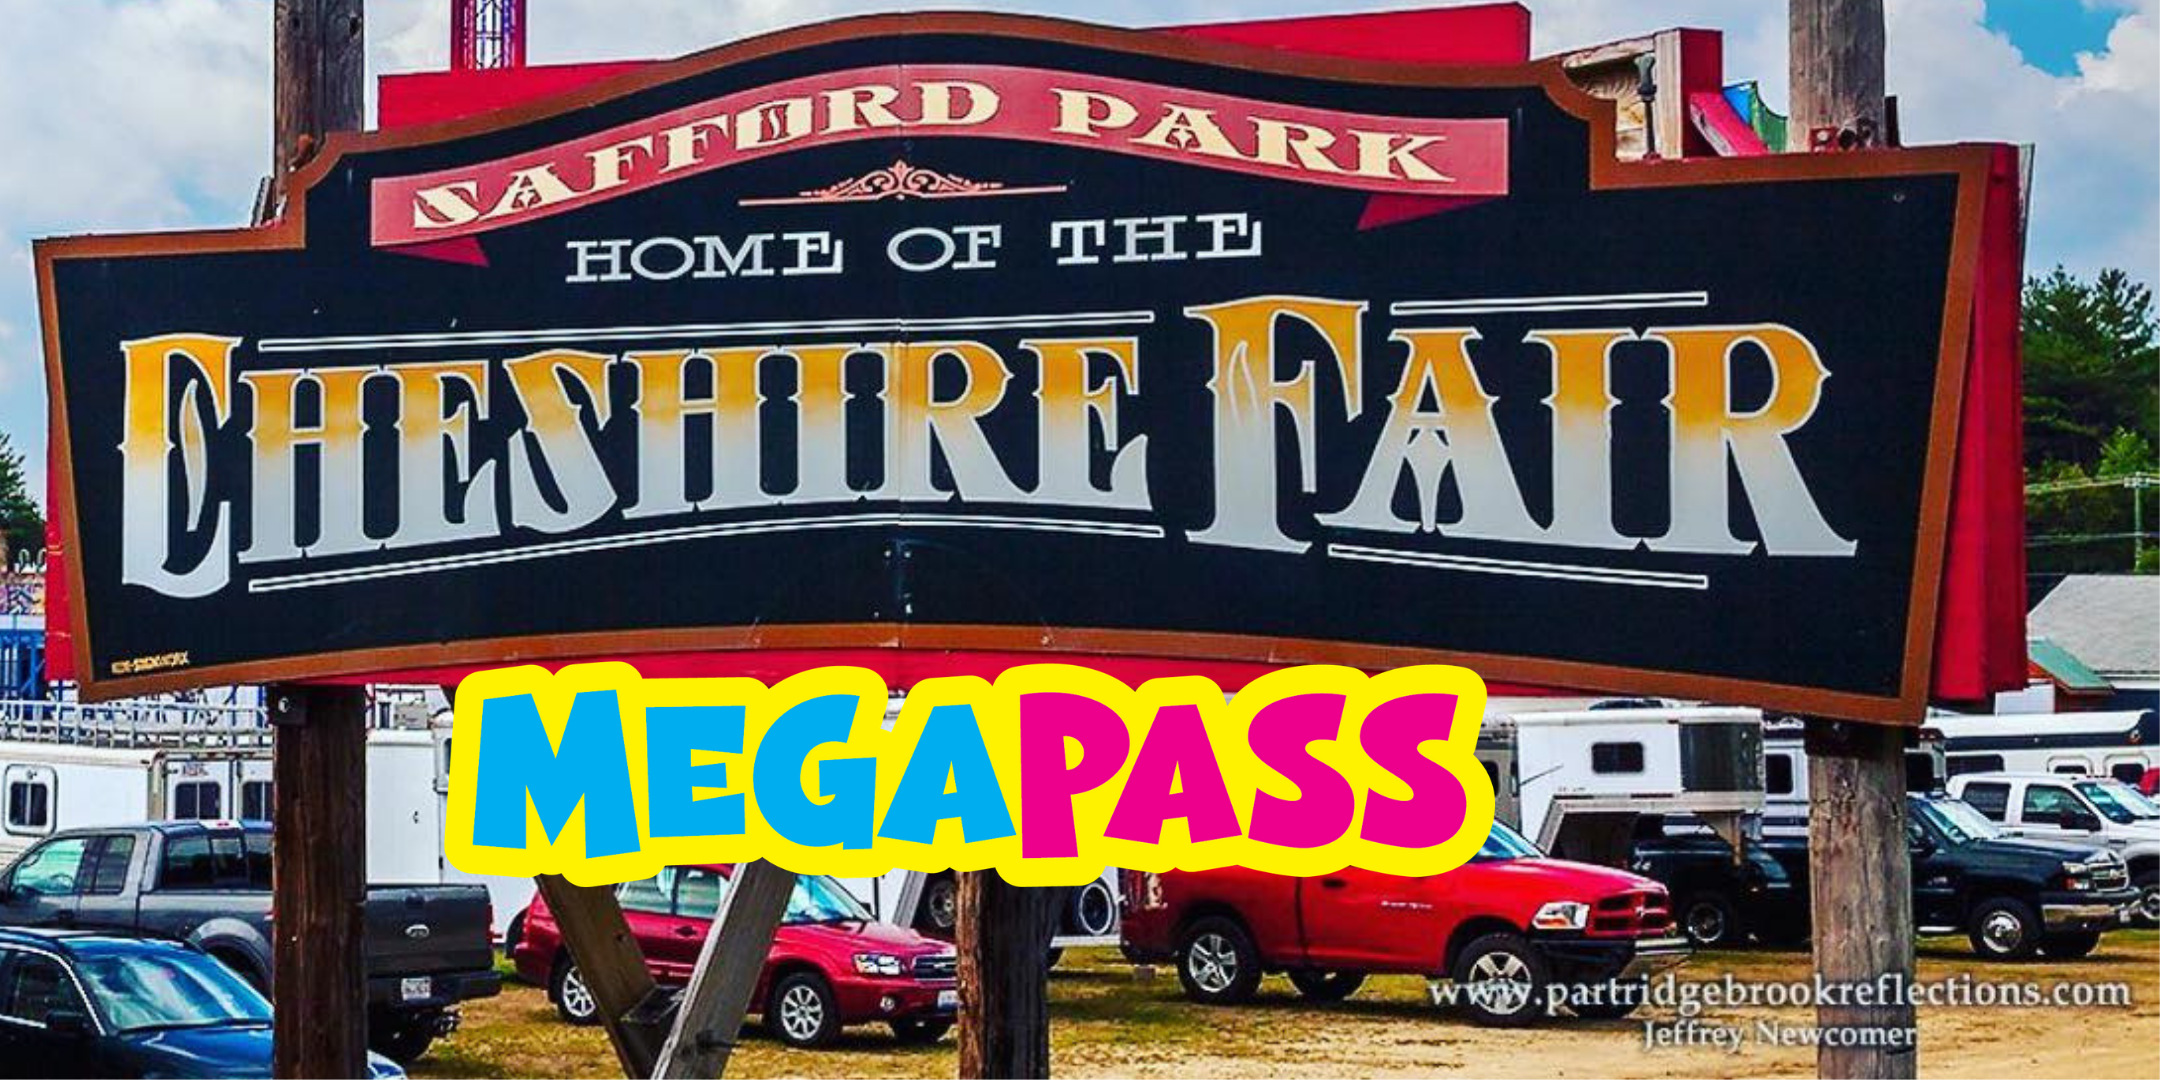 Purchase megapass tickets - 1 Day - $40Admission + Unlimited mechanical rides